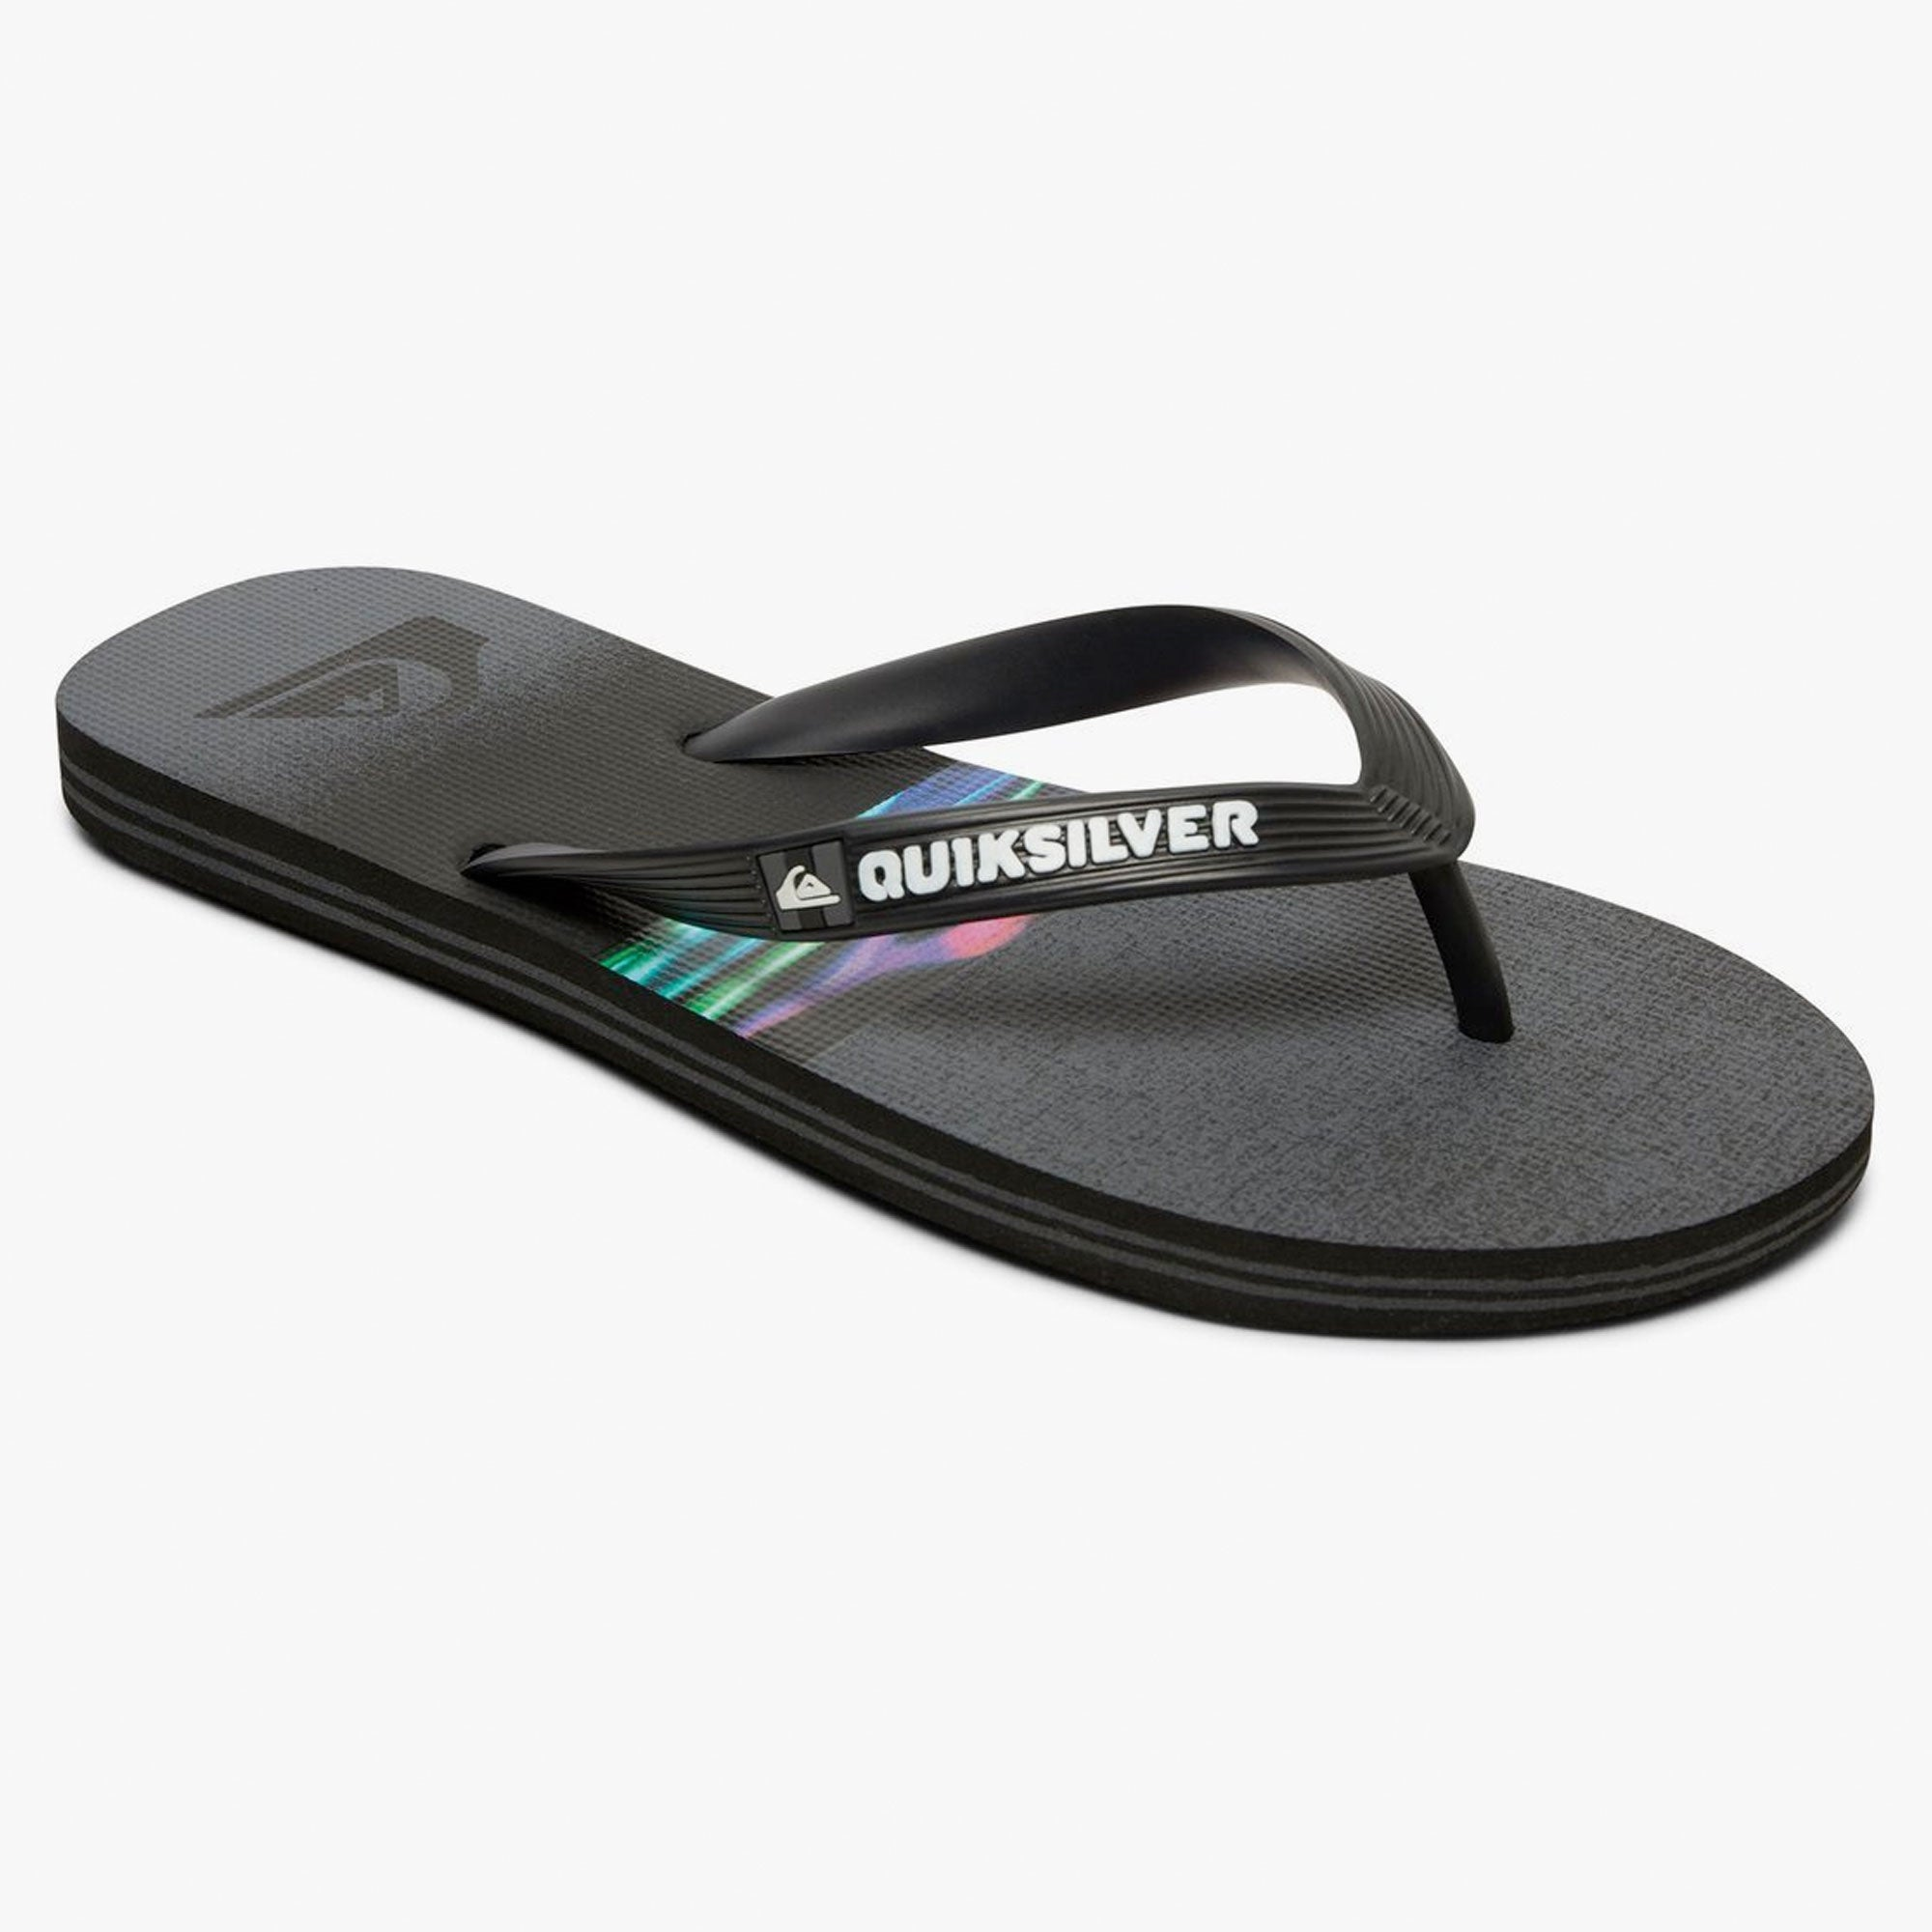 Quiksilver Molokai Hold Down Men's Sandals